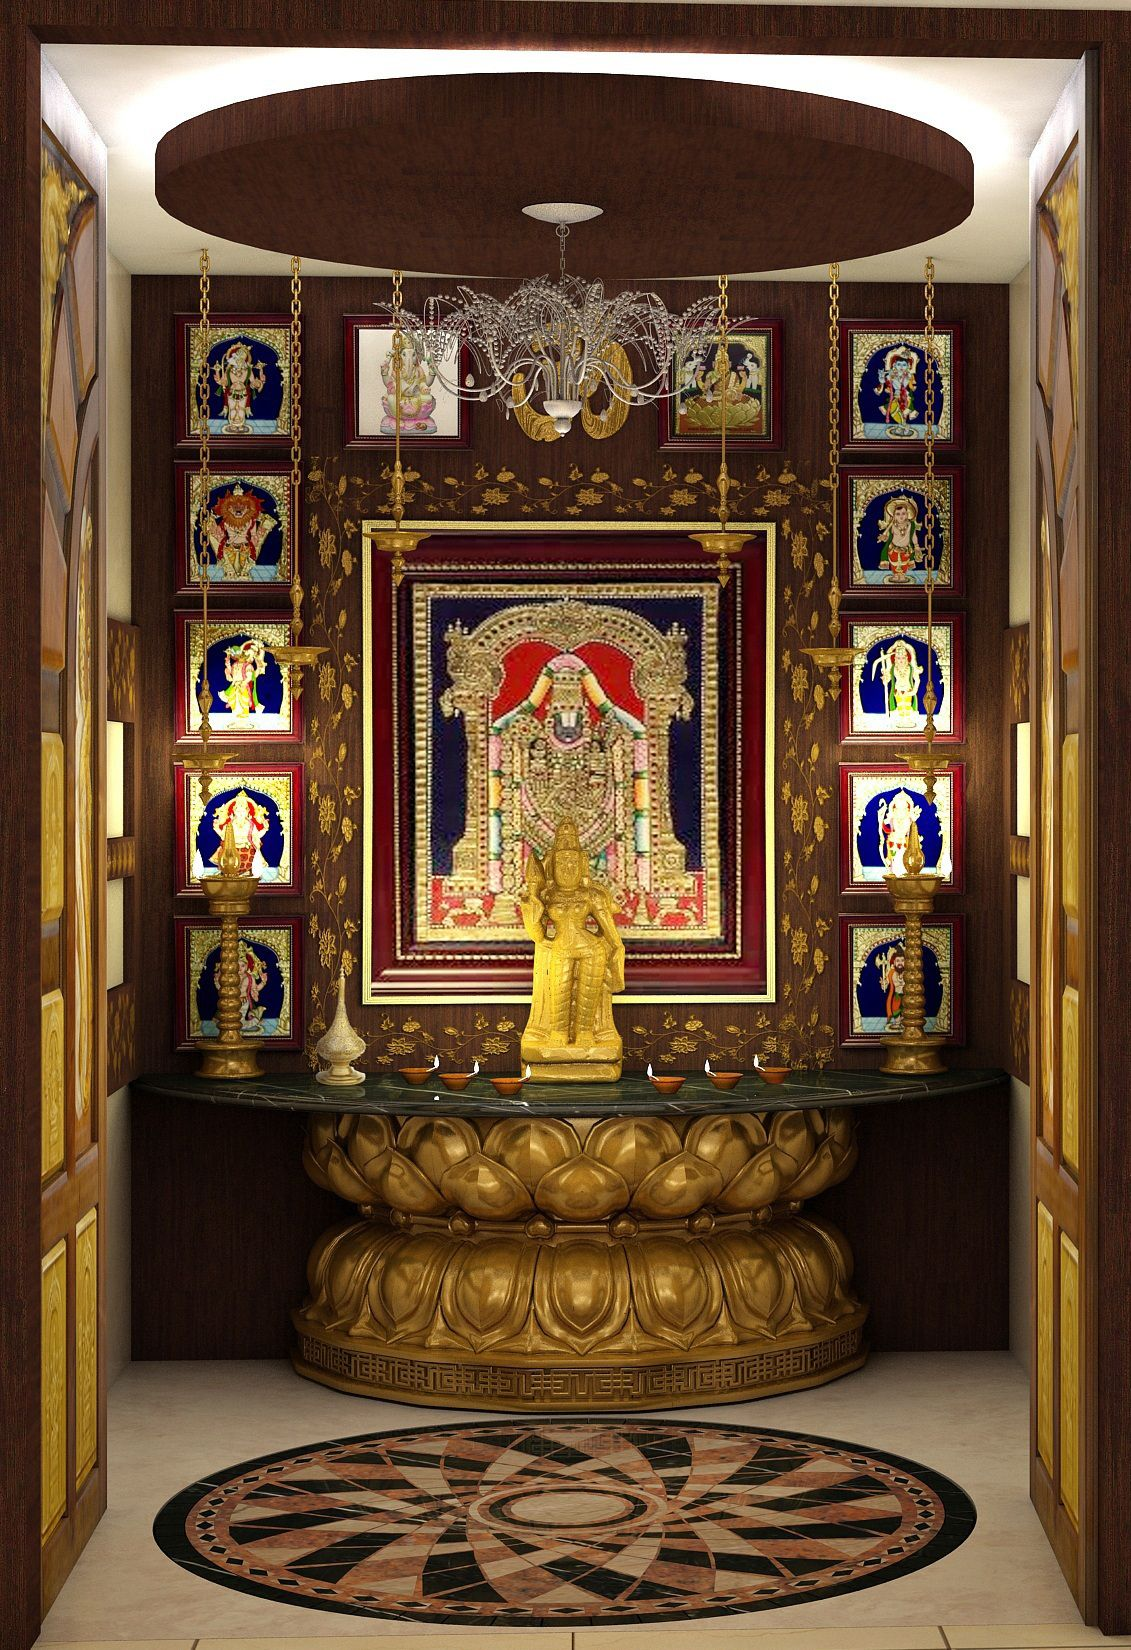 Pooja Room Door Designs Pooja Room: Customized Pooja Mandir By Mantragoldcoatings .From